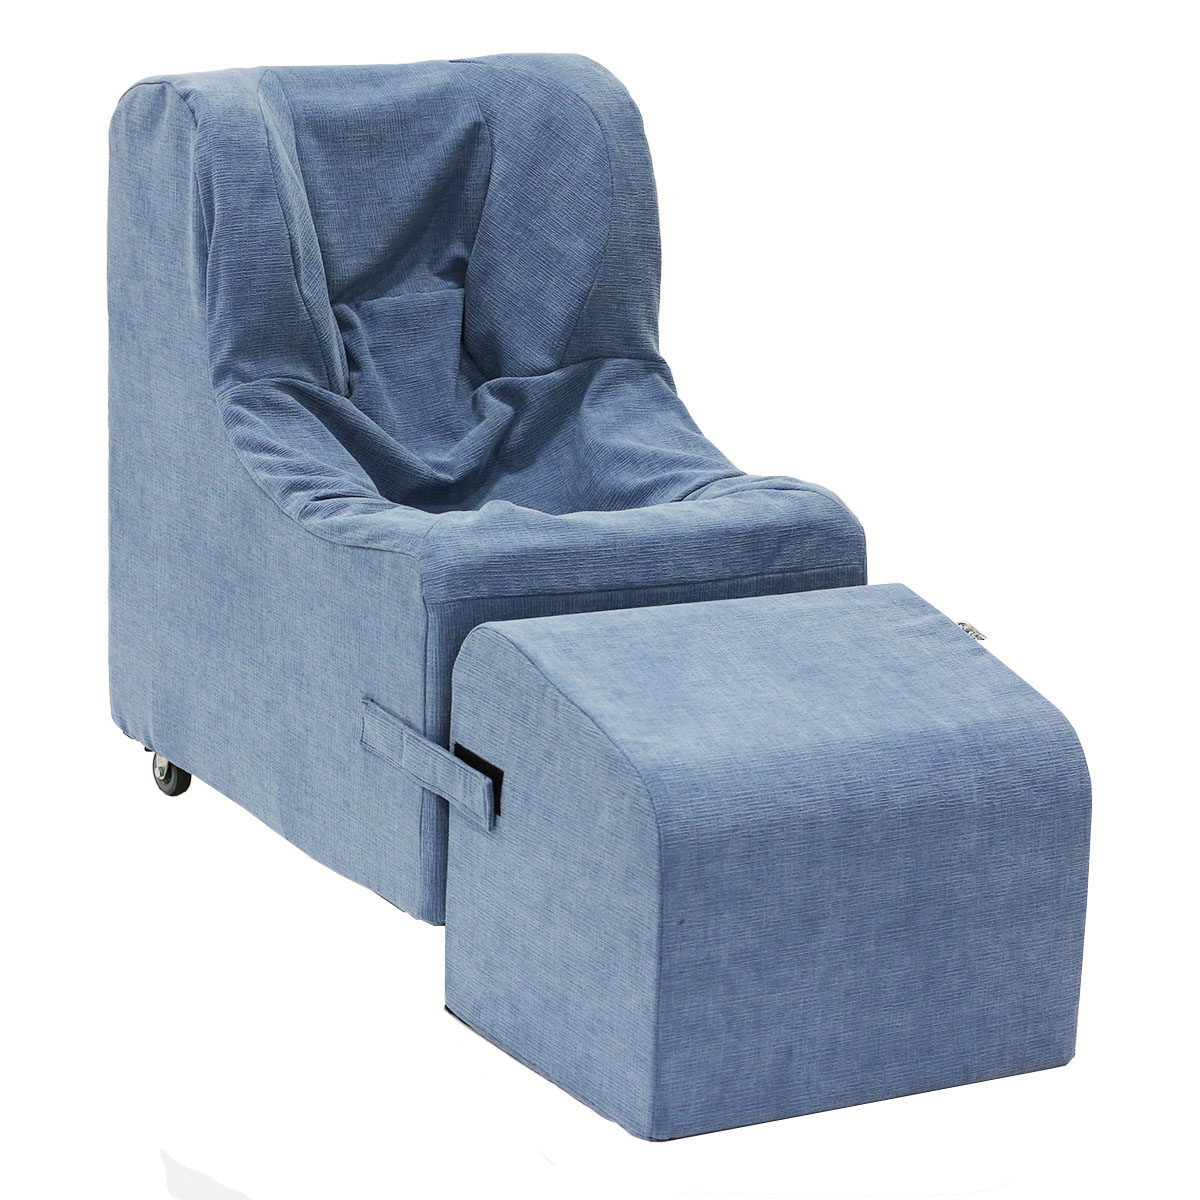 Special Needs Seating Roll Er Chill Out Chair Tec